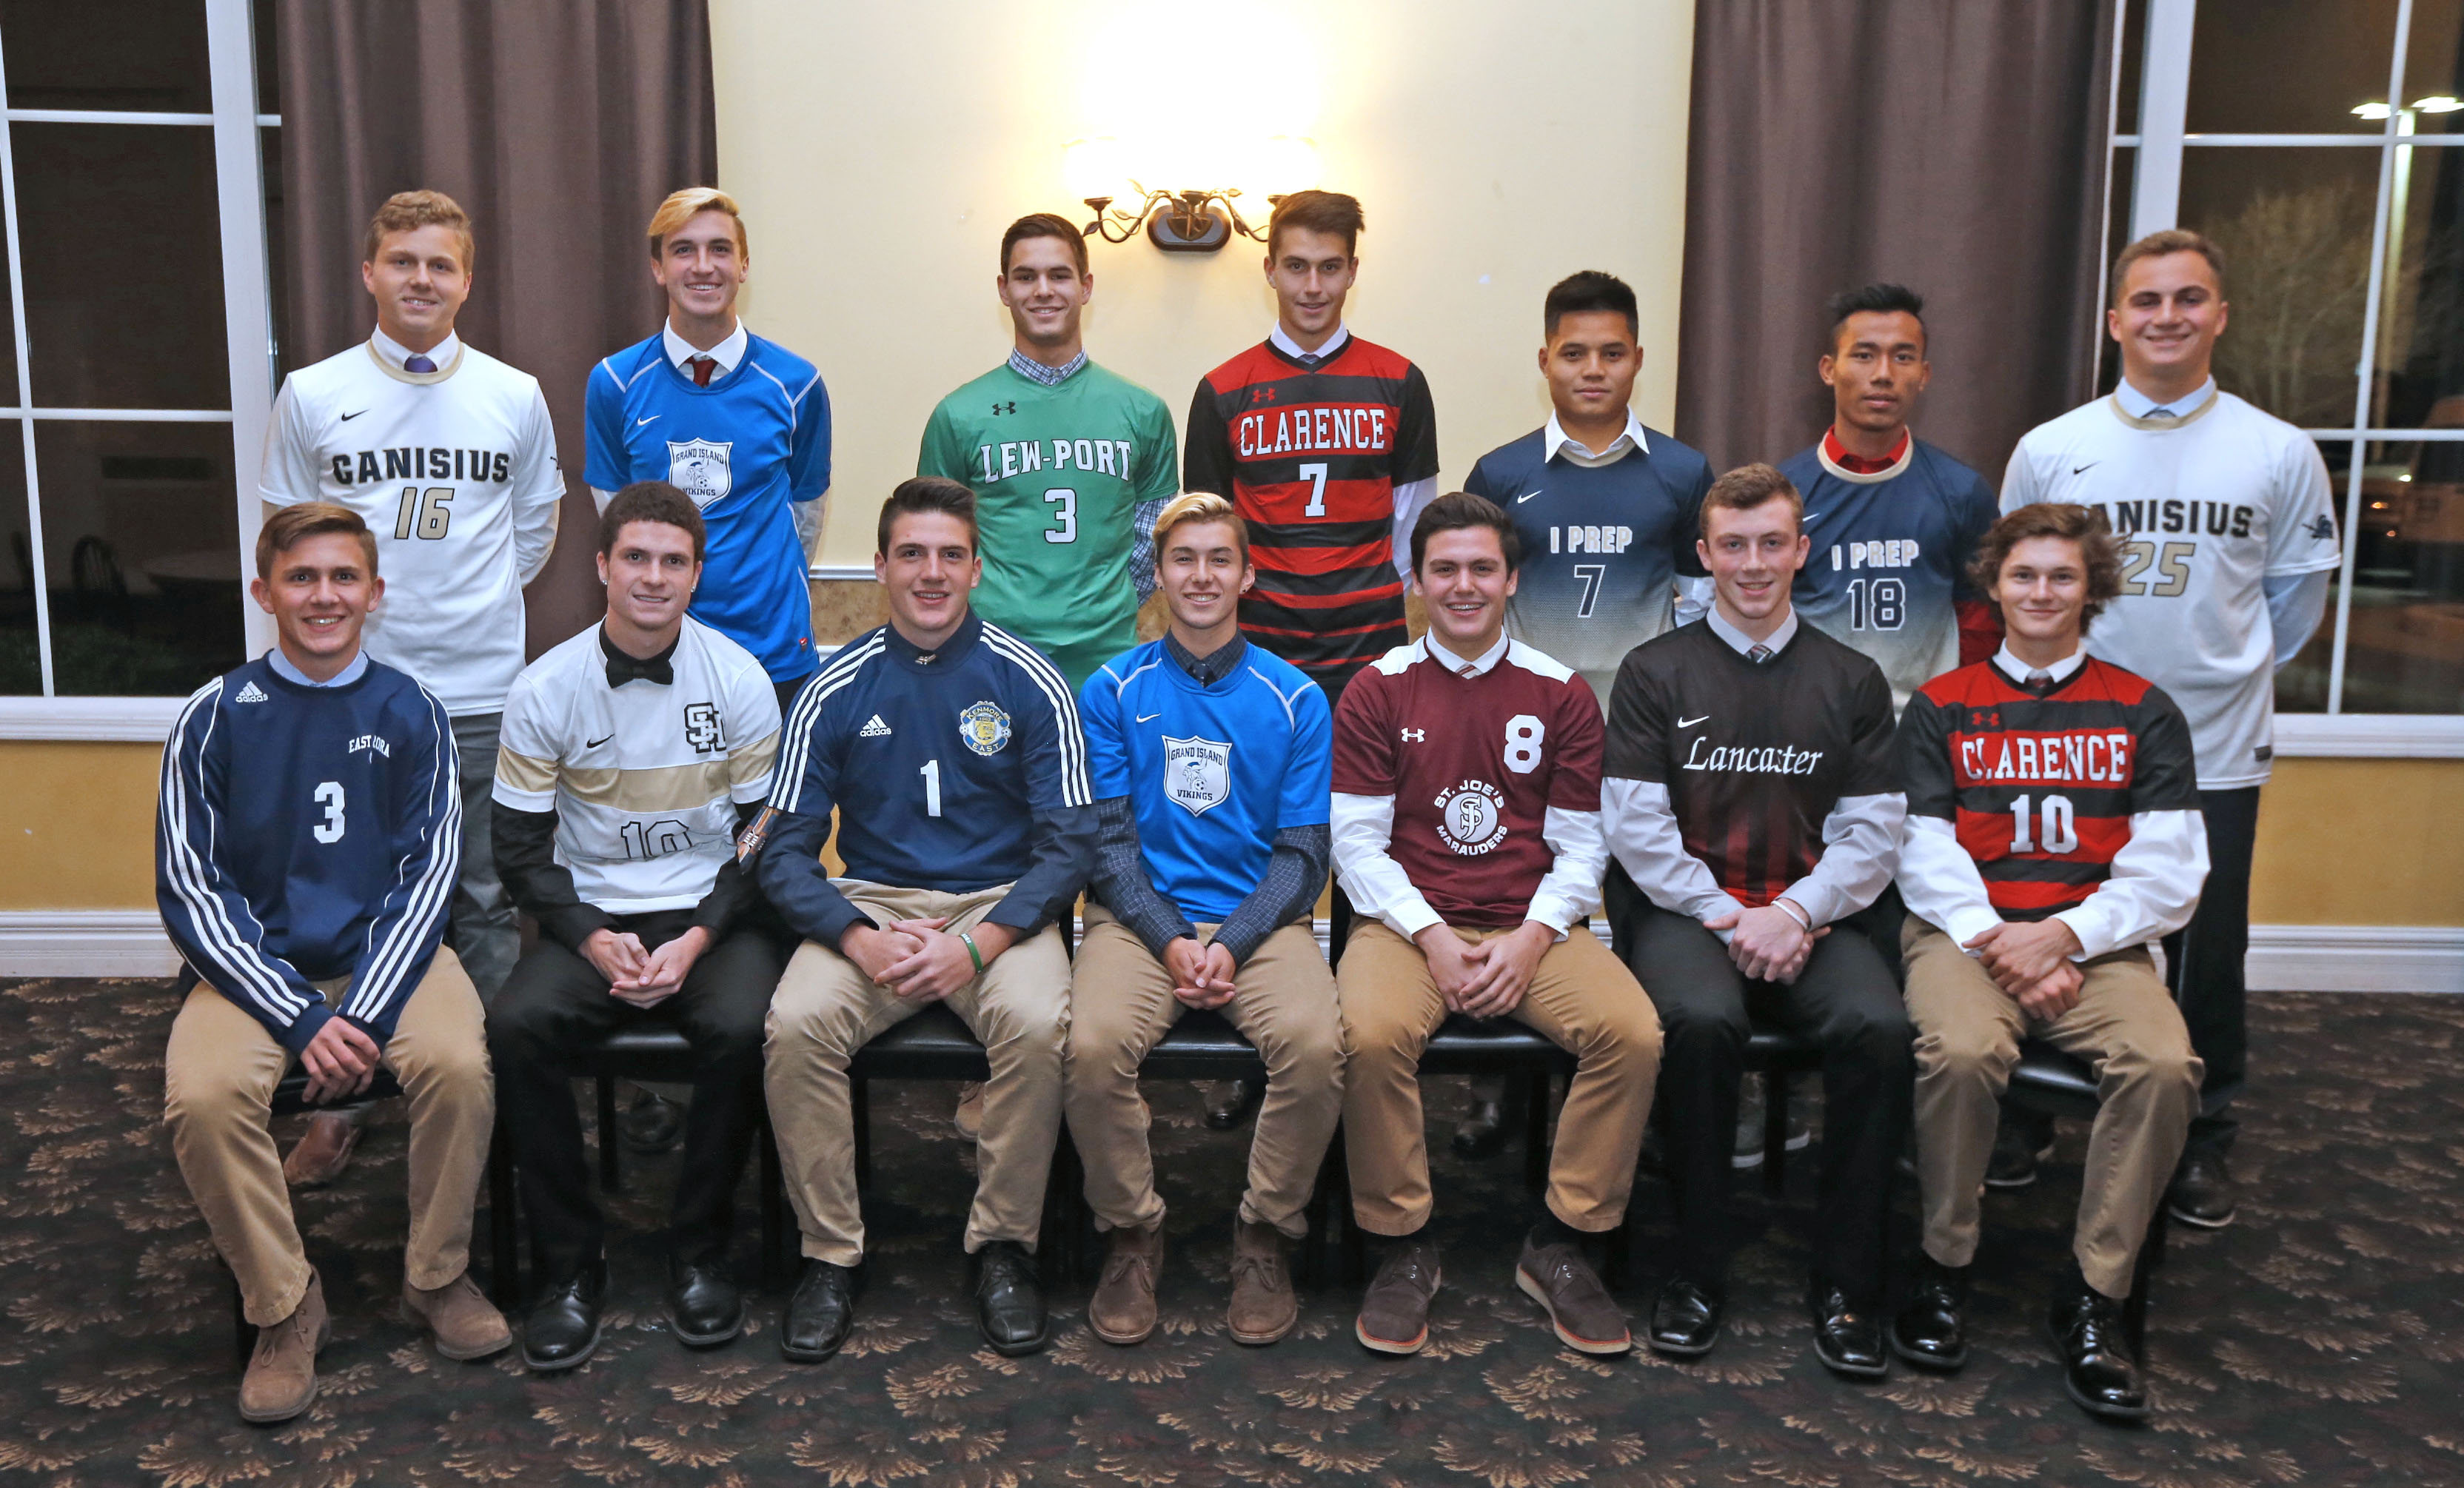 Western New York's best in boys soccer in 2016: From left, sitting, Bryce Schiltz, Noah Keem, Dylan Guarino, Jacob Gleave, Spencer Frome, Kevin Loftus and Sam Sutherland. Standing, from left, Max Montante, Garrett Robinson, Zachary Westadt, Austin Knorze, Pa Lu, Siang Hnin Lian and Mike Mazzara. Missing is Jackson Retzer. (Robert Kirkham/Buffalo News)